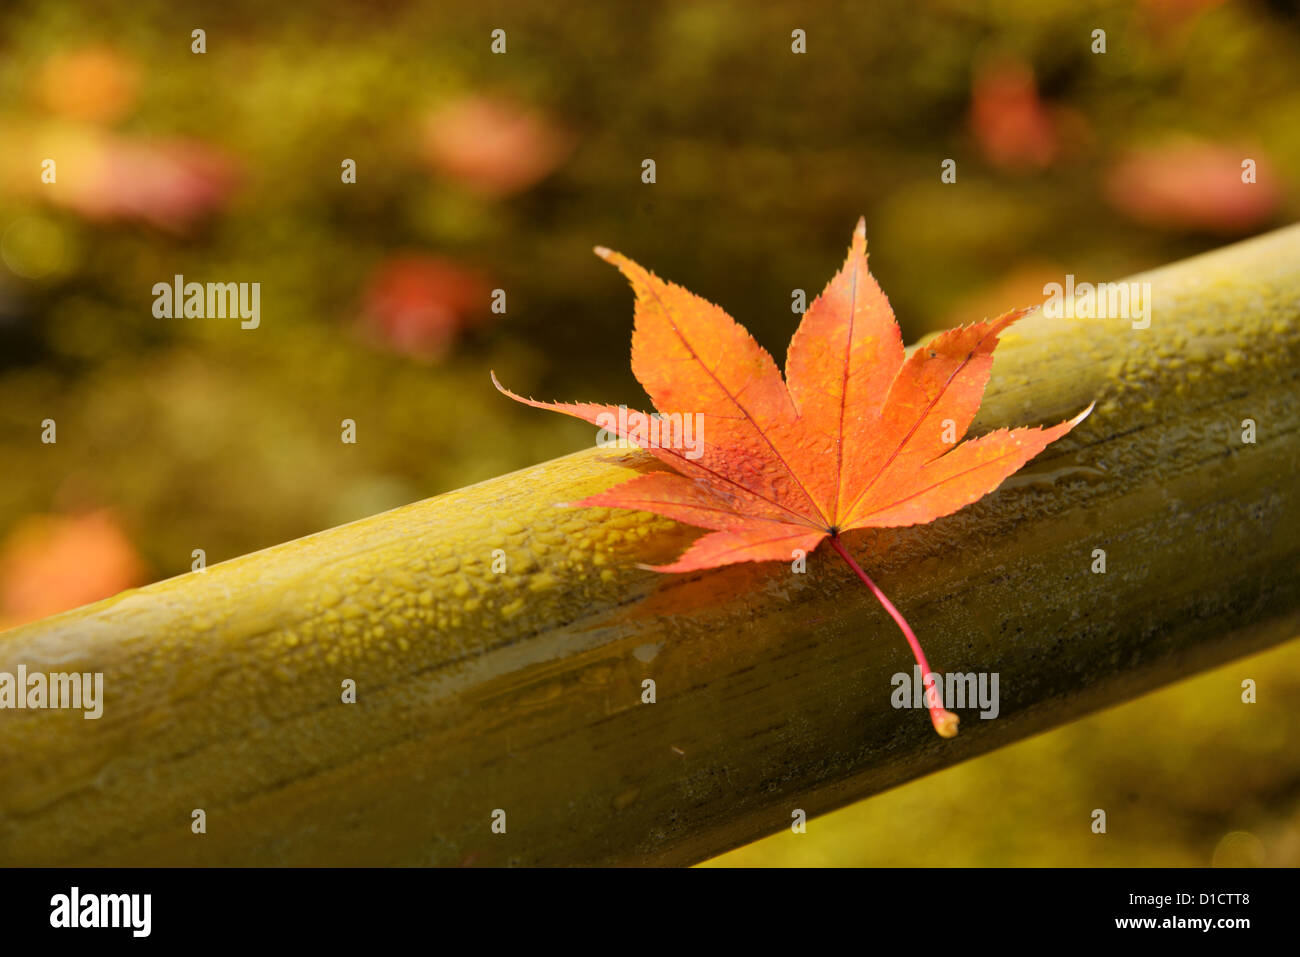 Red maple leaf soaked in morning dew on a bamboo fence. - Stock Image